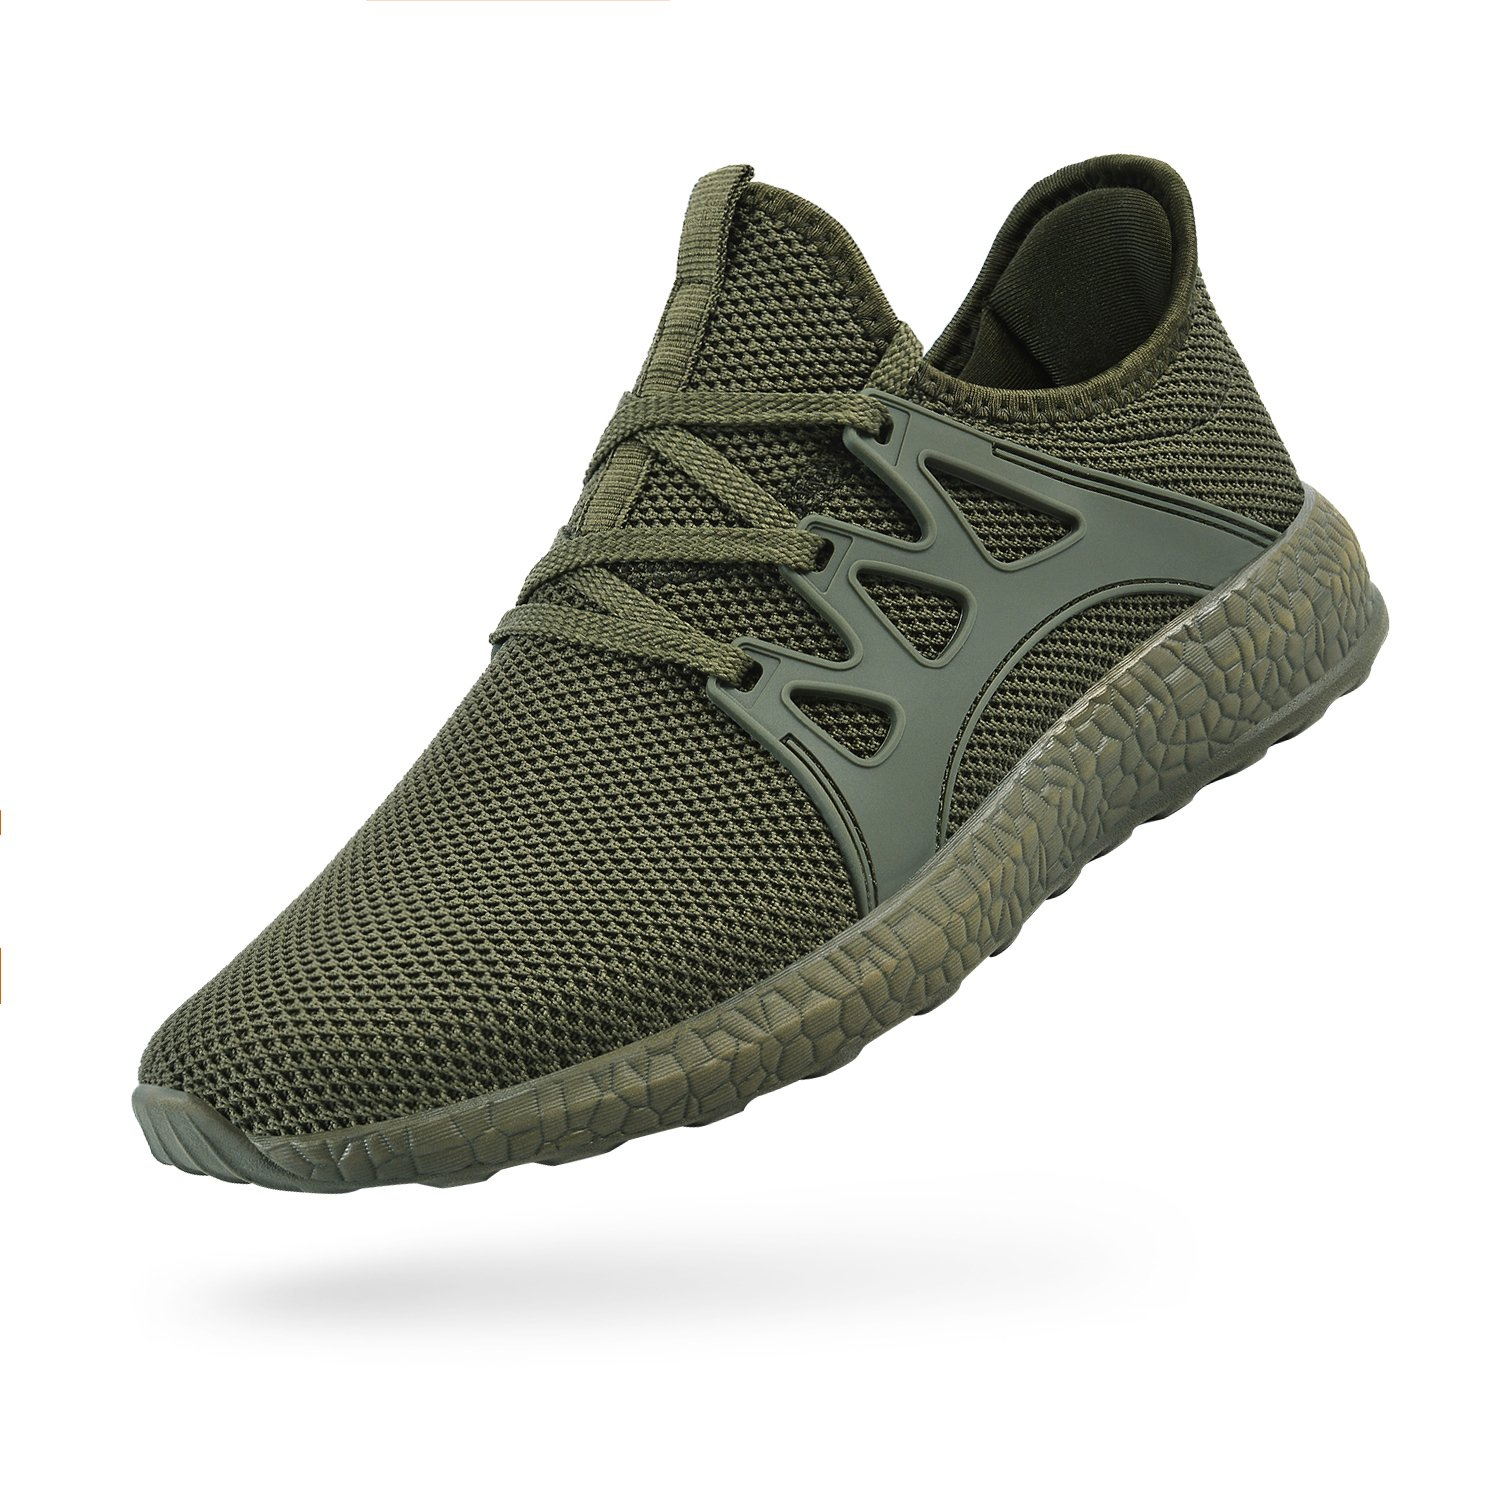 QANSI Men's Sneakers Mesh Ultra Lightweight Breathable Athletic Running Walking Gym Shoes Green Size 9.5